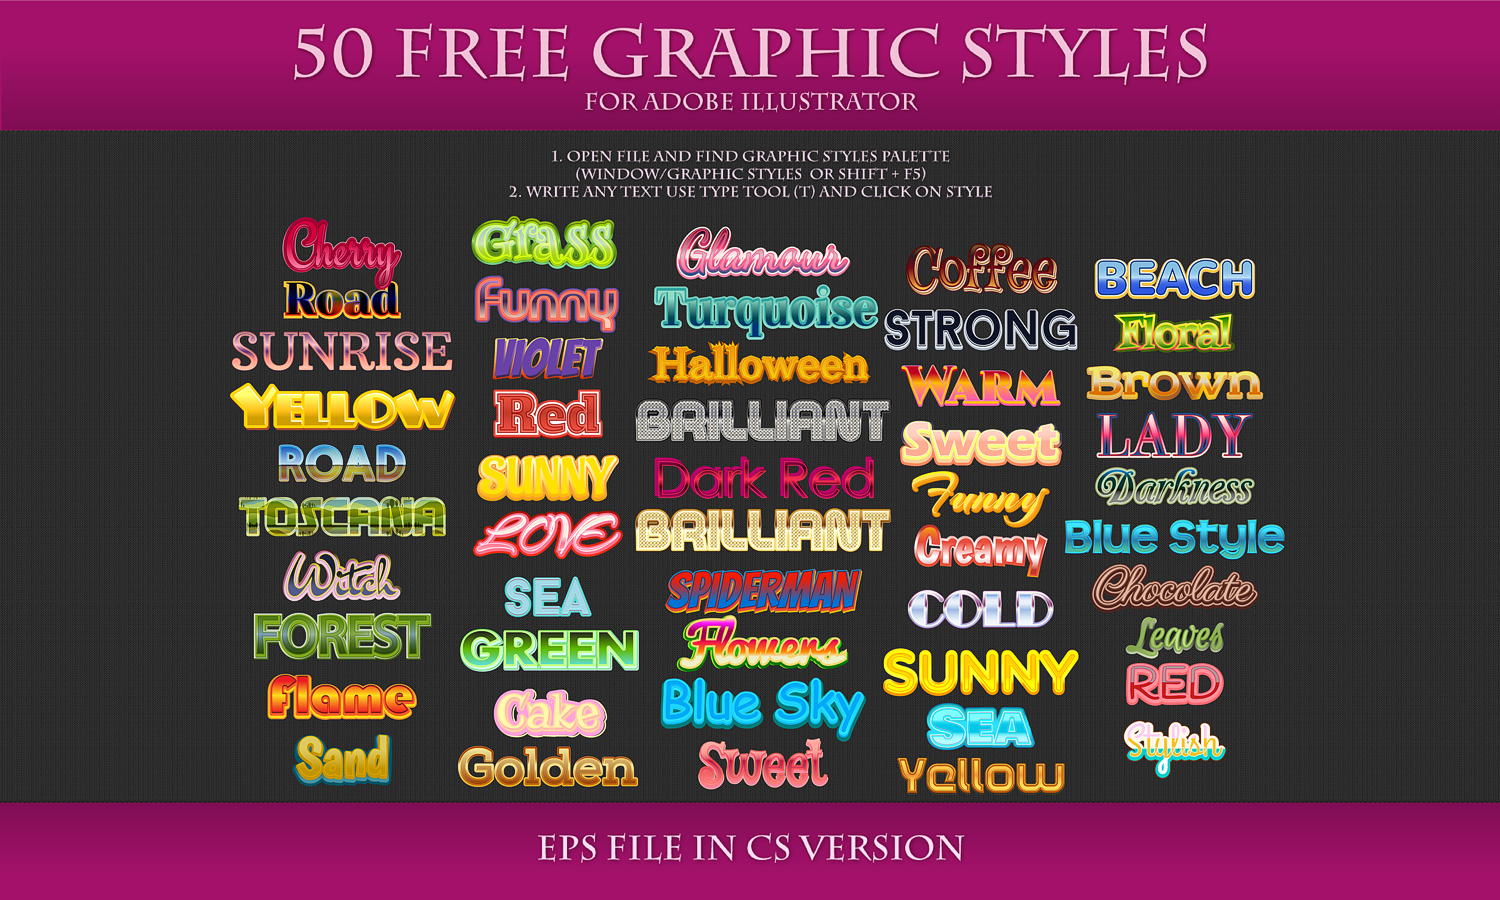 50 FREE Styles for Adobe Illustrator by Love-Kay on DeviantArt